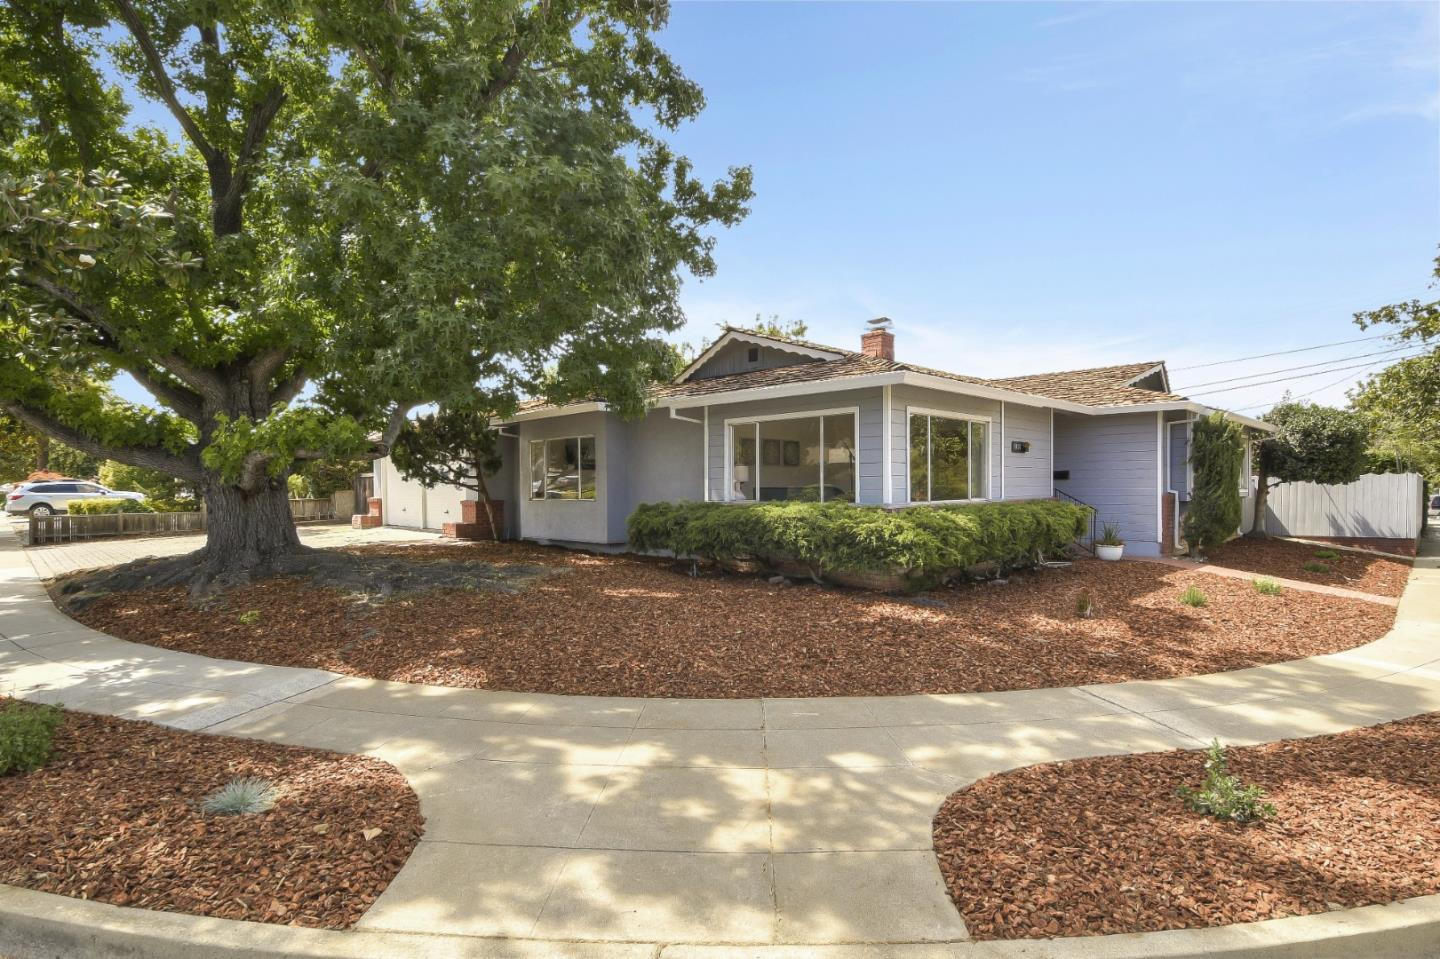 1031 ENDERBY WAY, SUNNYVALE, CA 94087